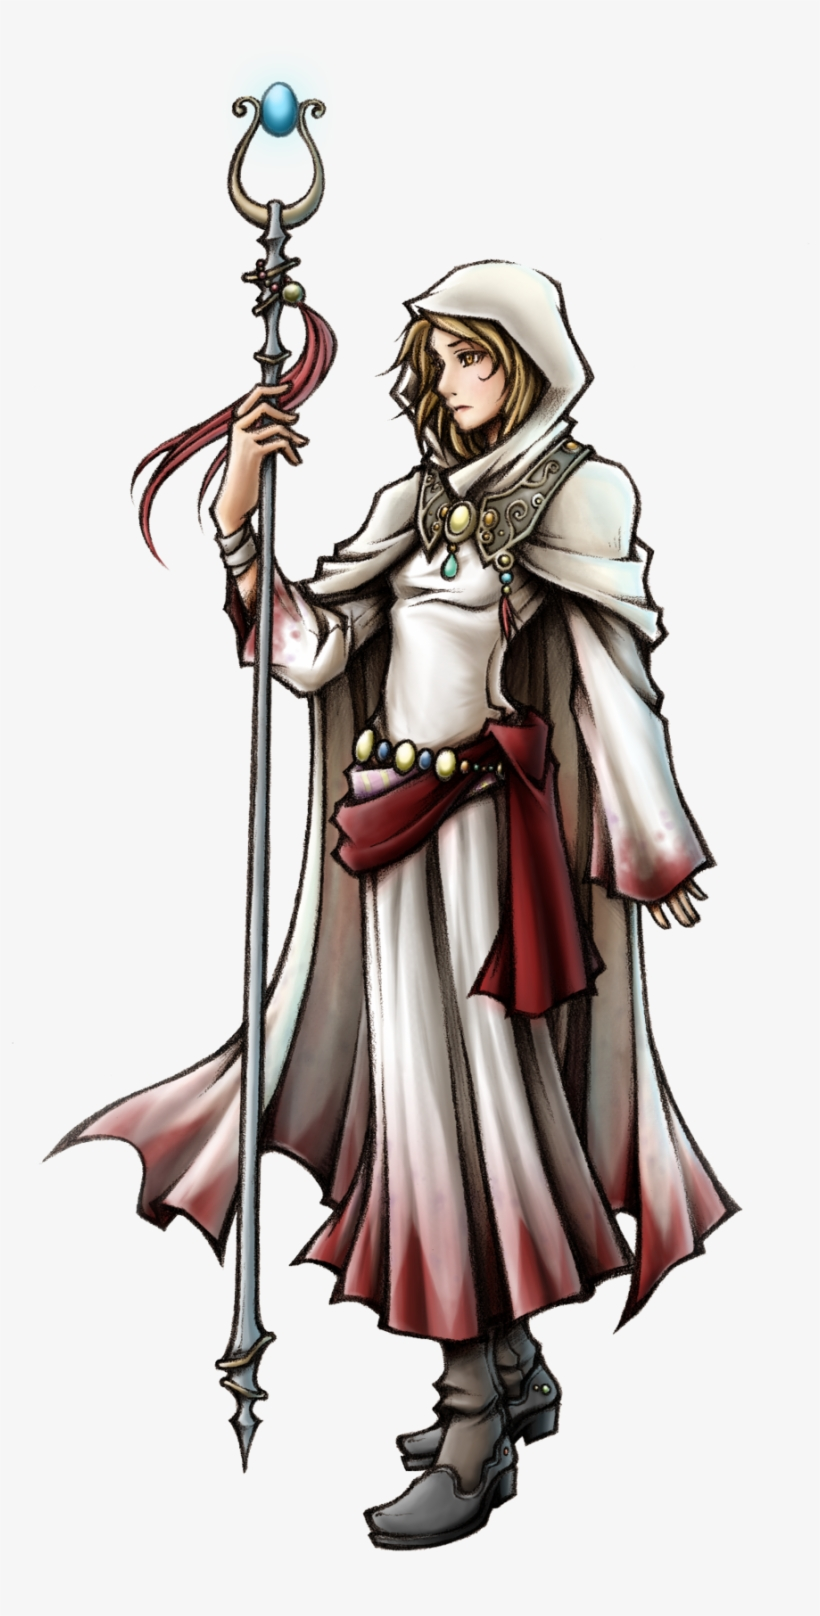 New Priest - White Mage Final Fantasy Art, transparent png #2221269